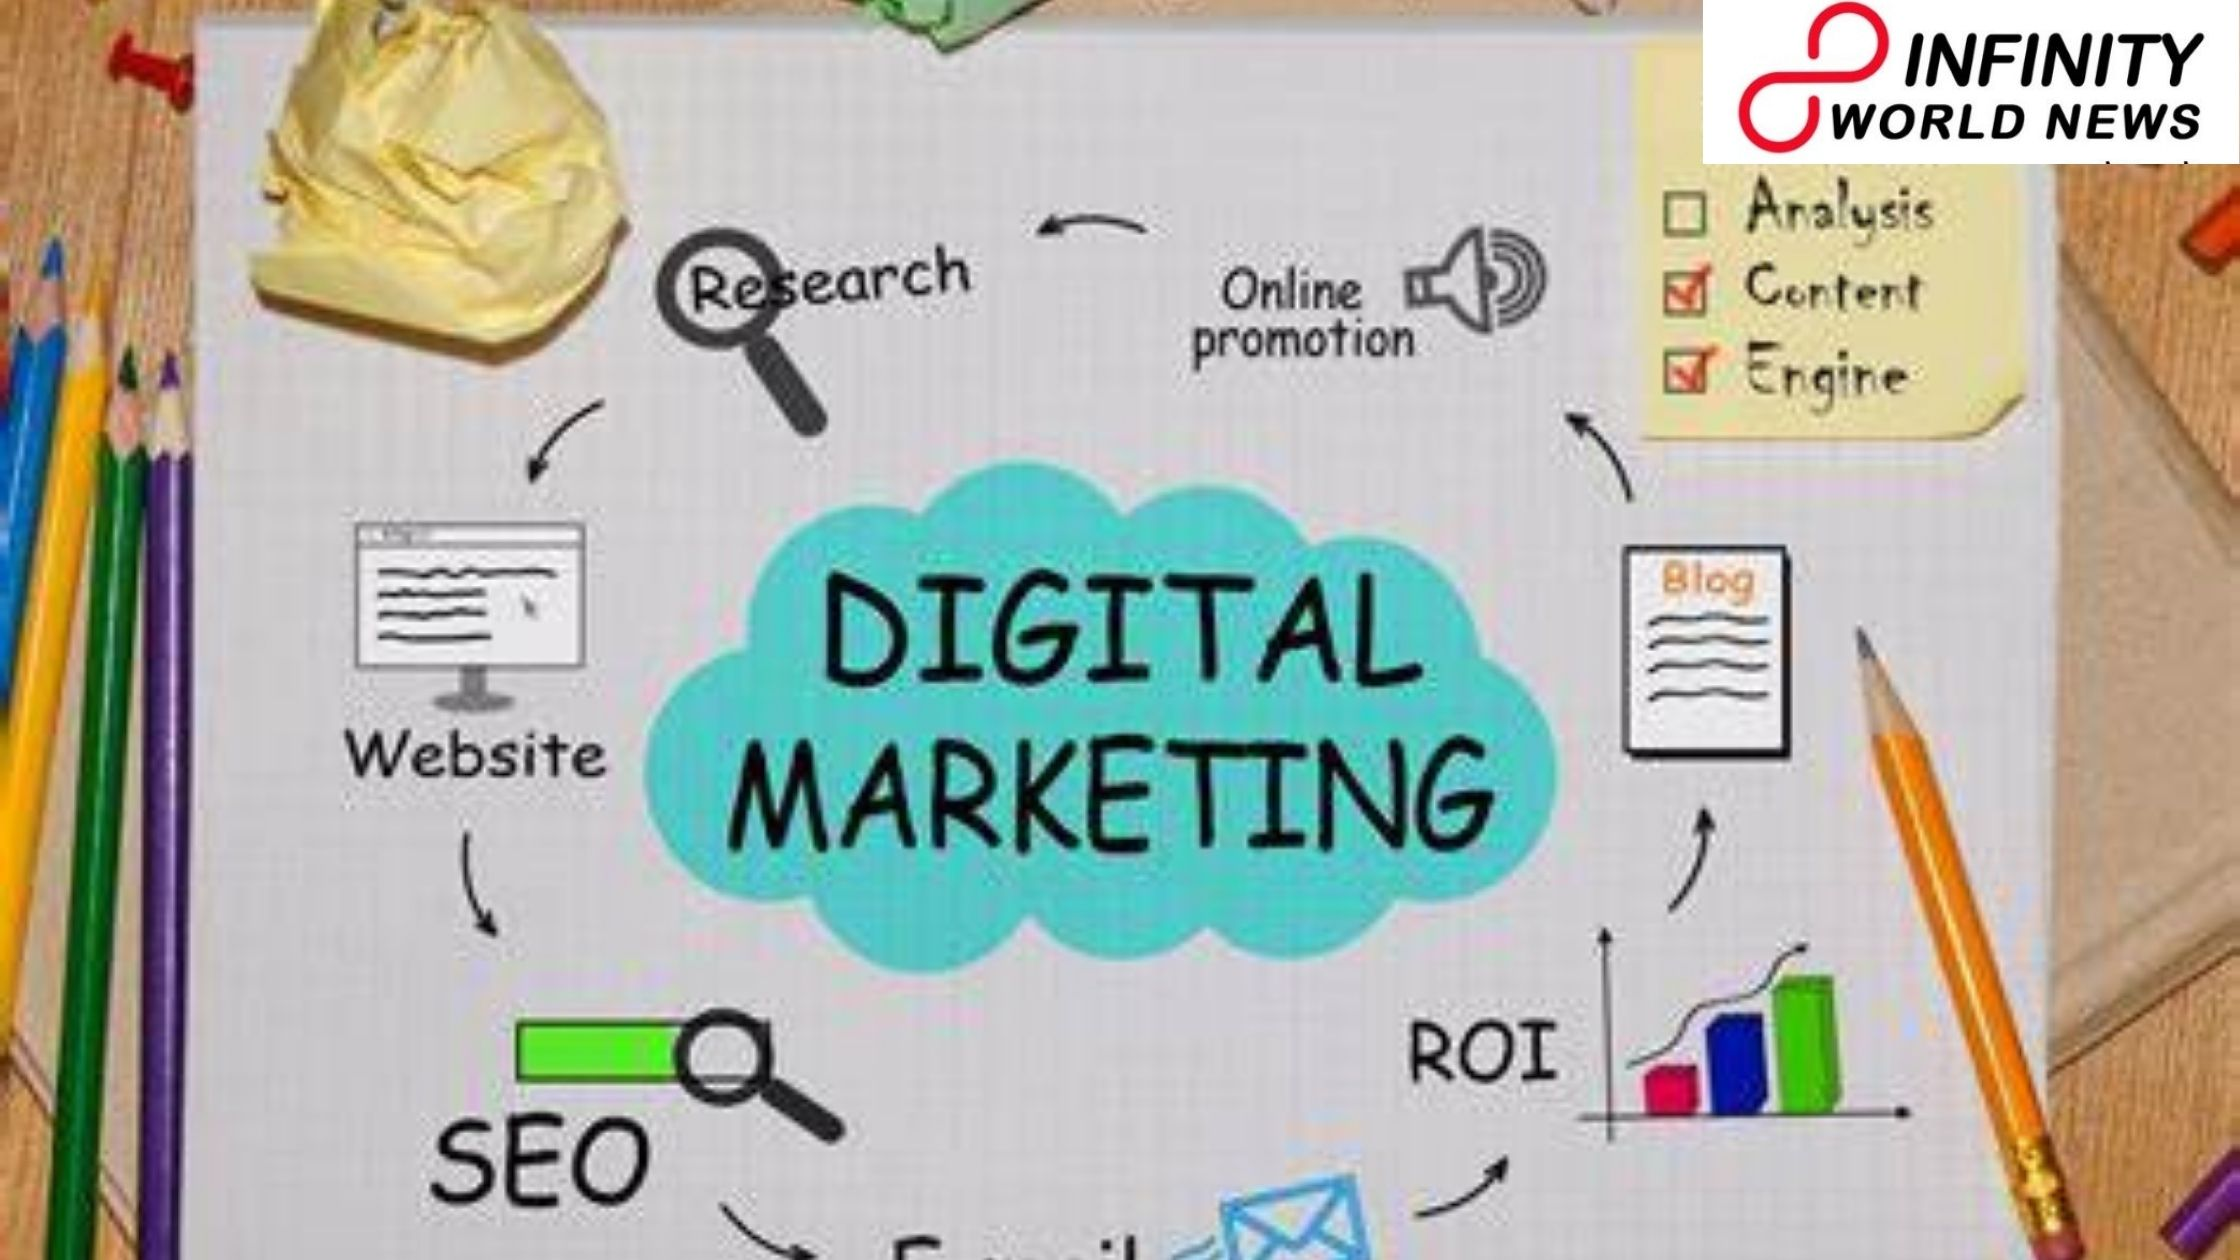 'Digital marketing'- Most well-known expertise among Indian graduates of 2021